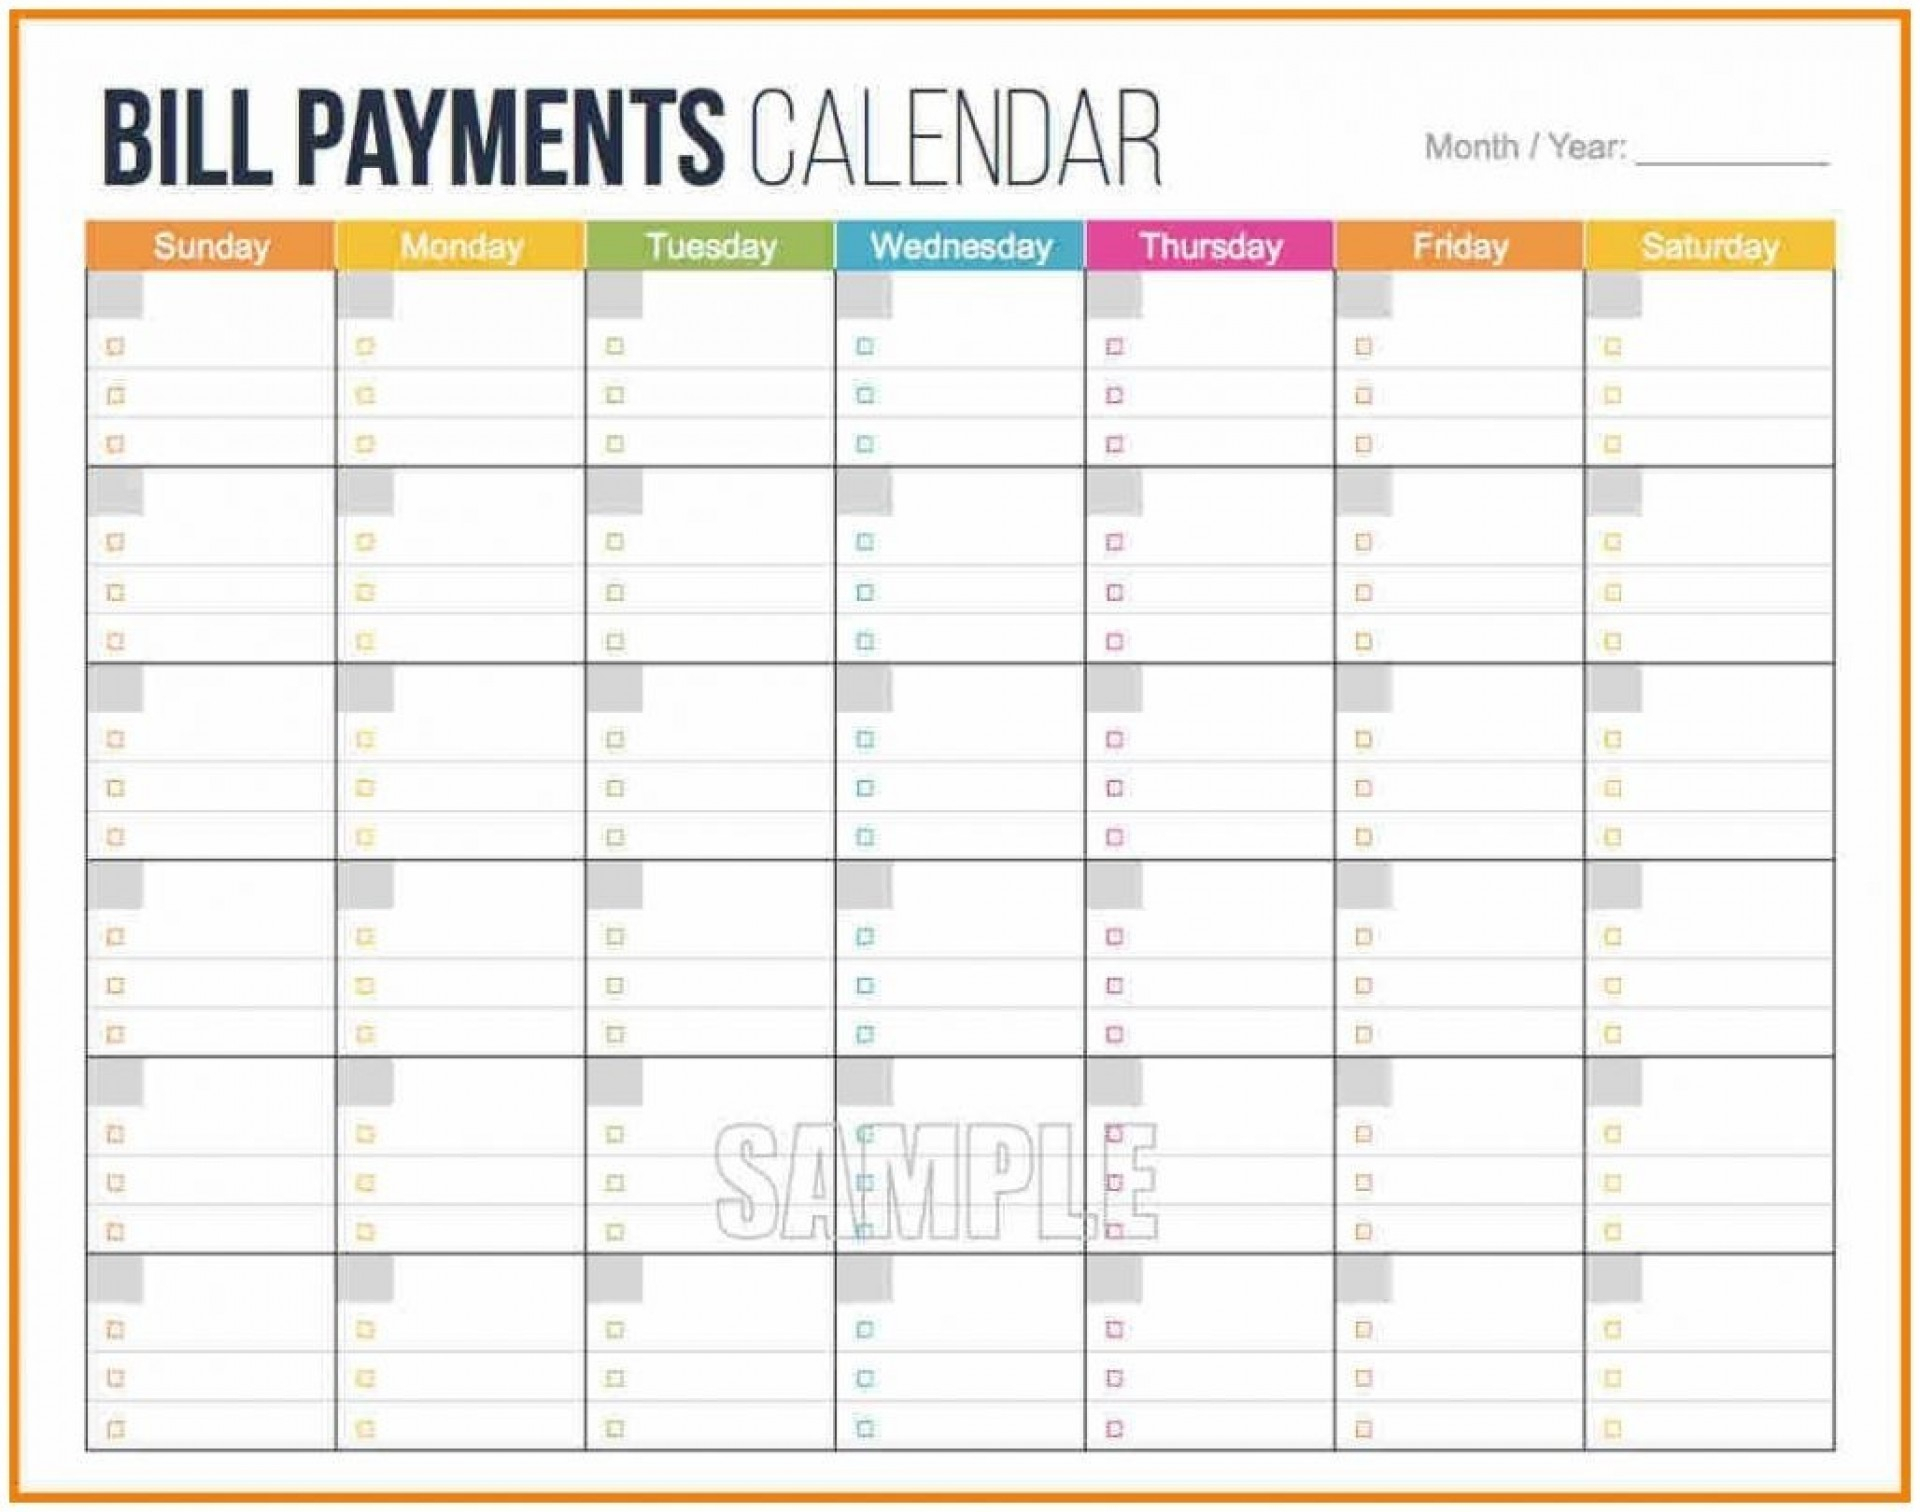 009 Bill Pay Calendar Template Ideas Paying Free Printable